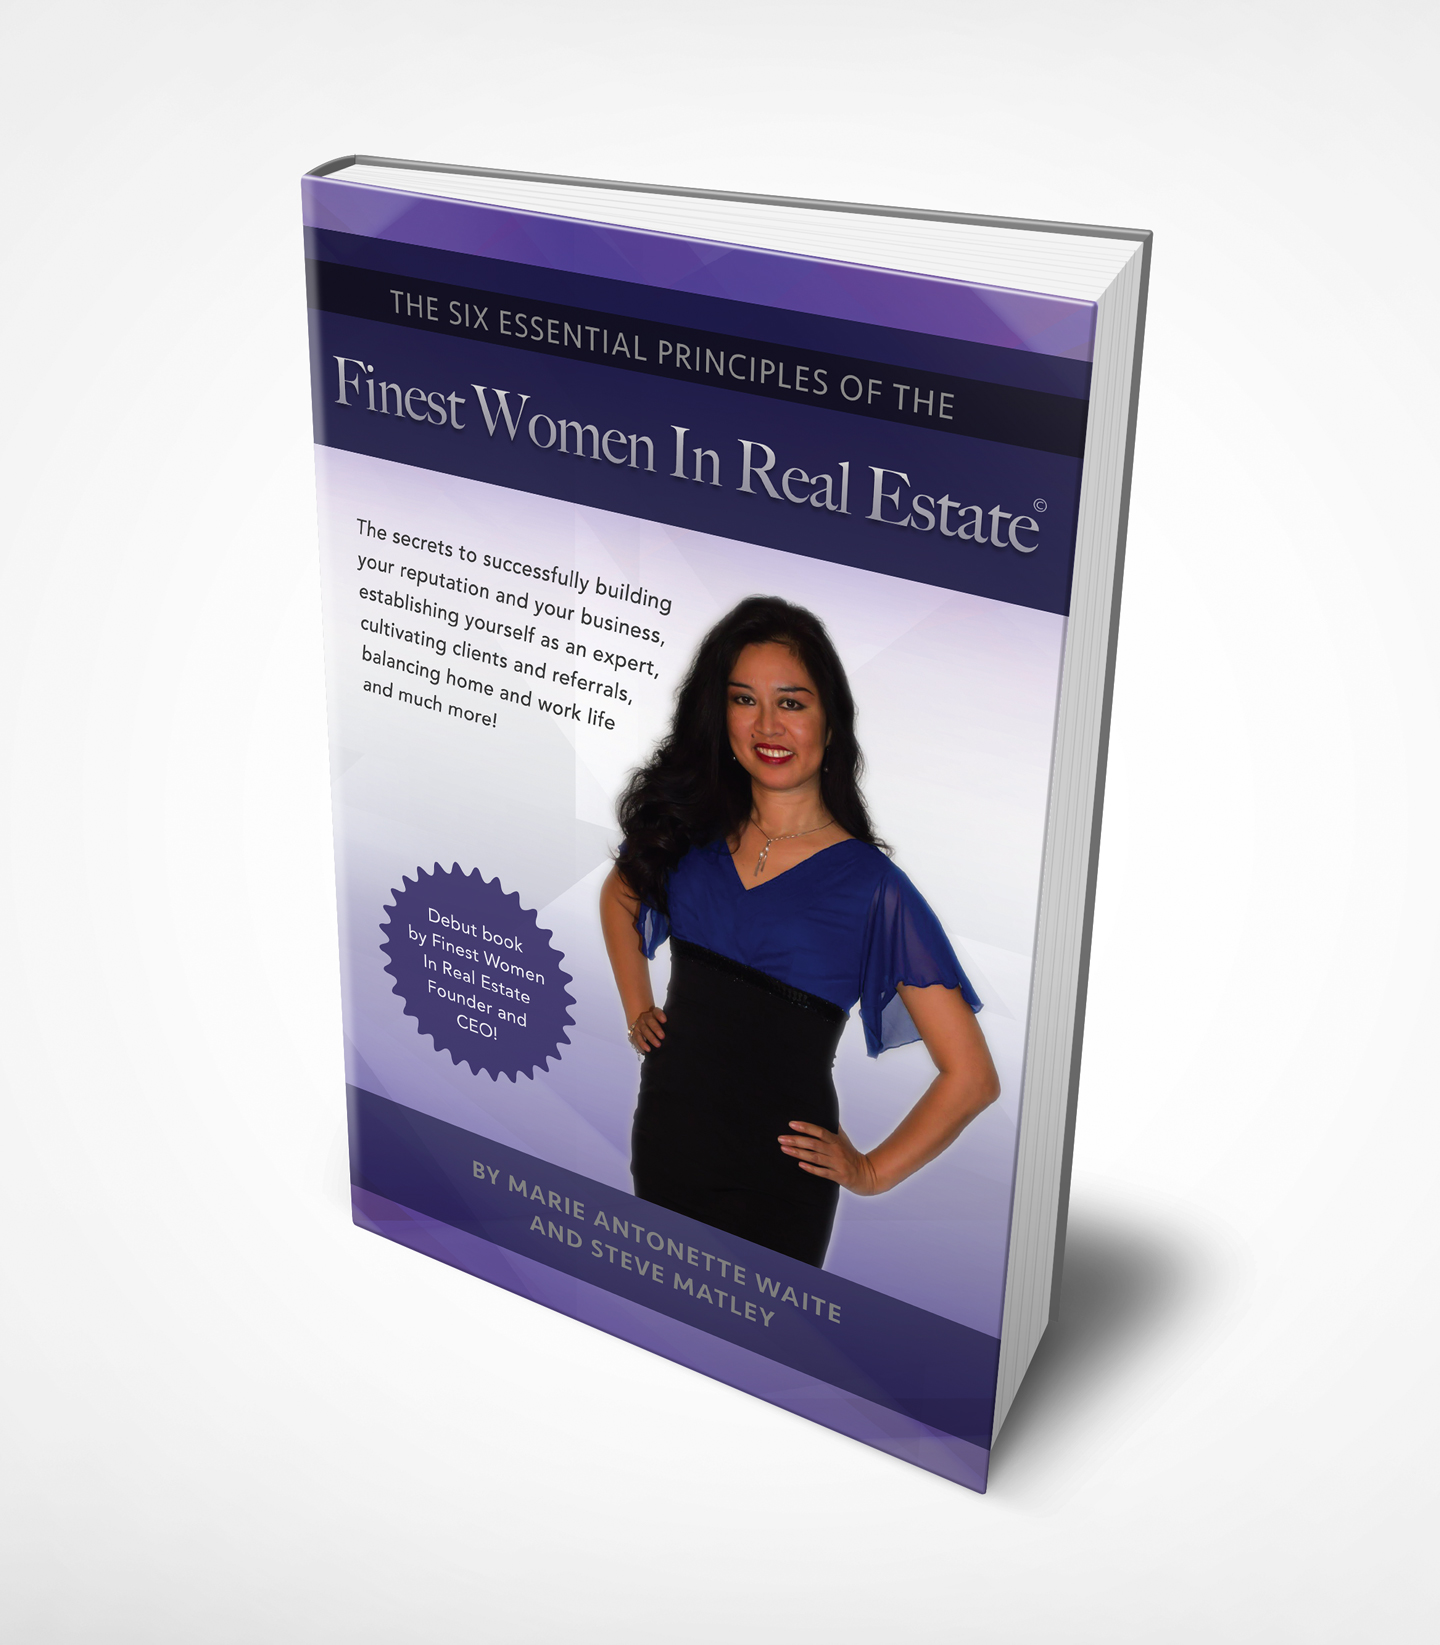 Six Essential Principles of the Finest Women in Real Estate